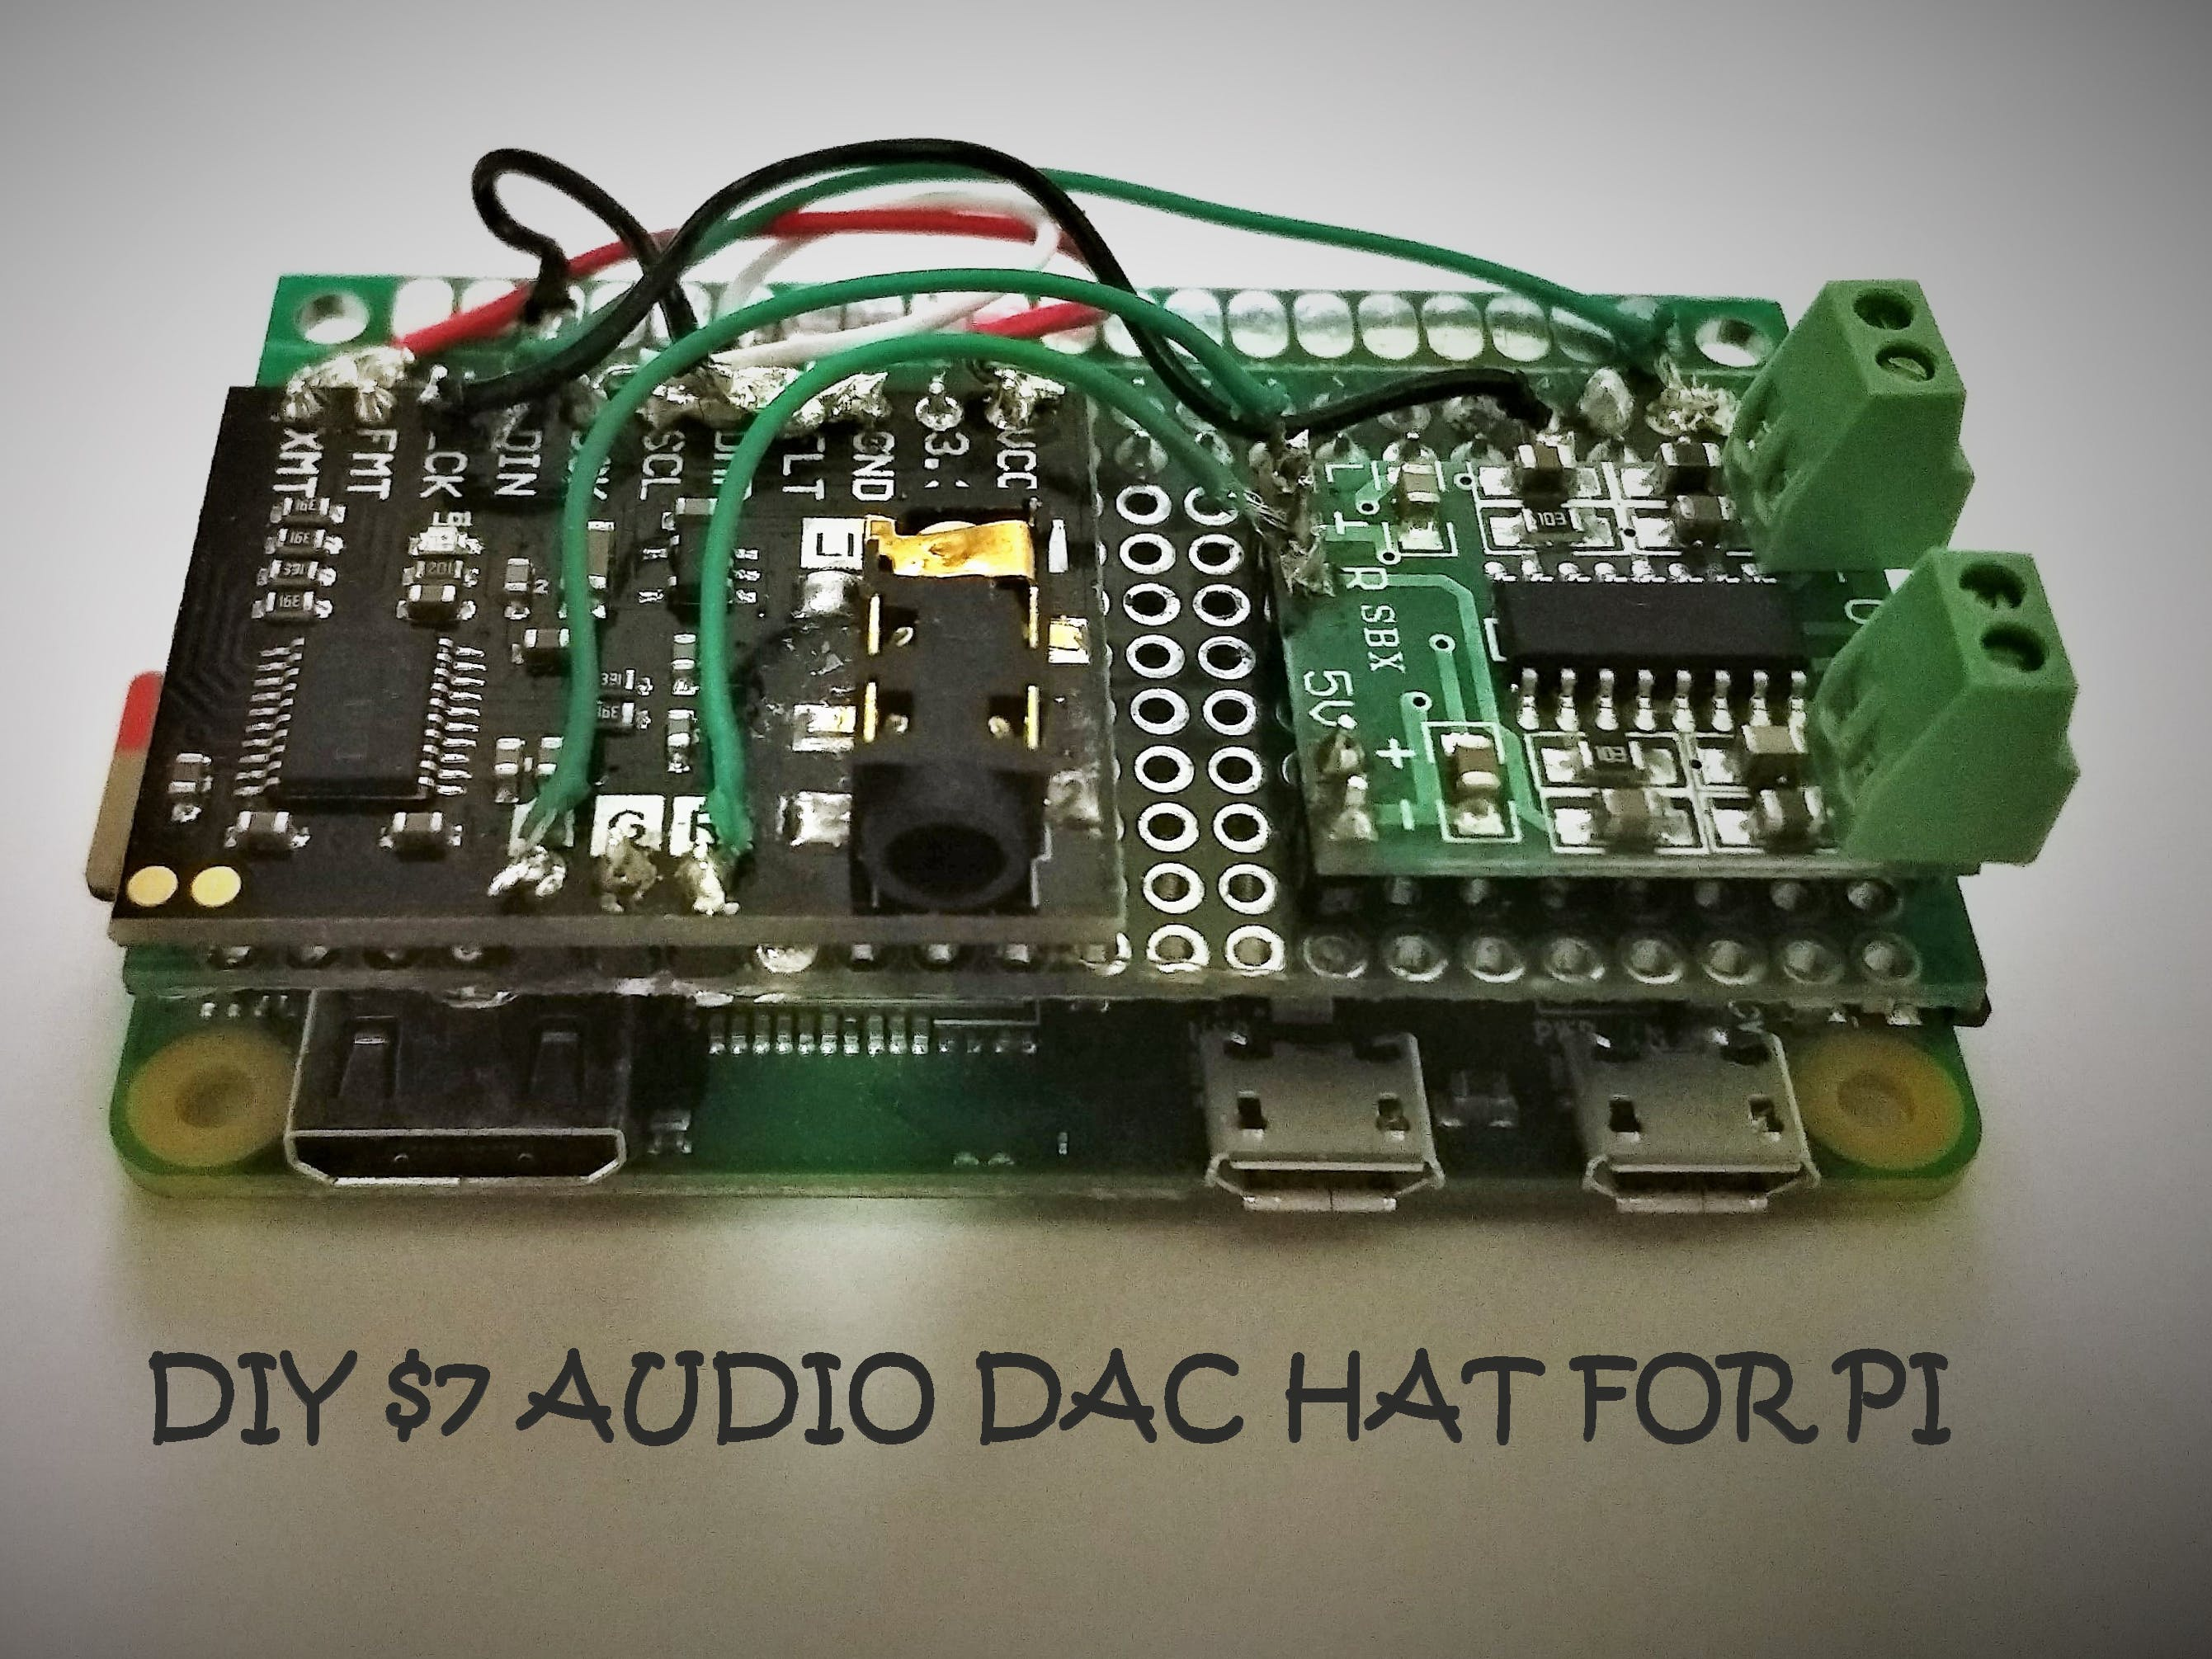 Audio DAC Hat for Pi with Headphone Jack and 3W Speaker Out